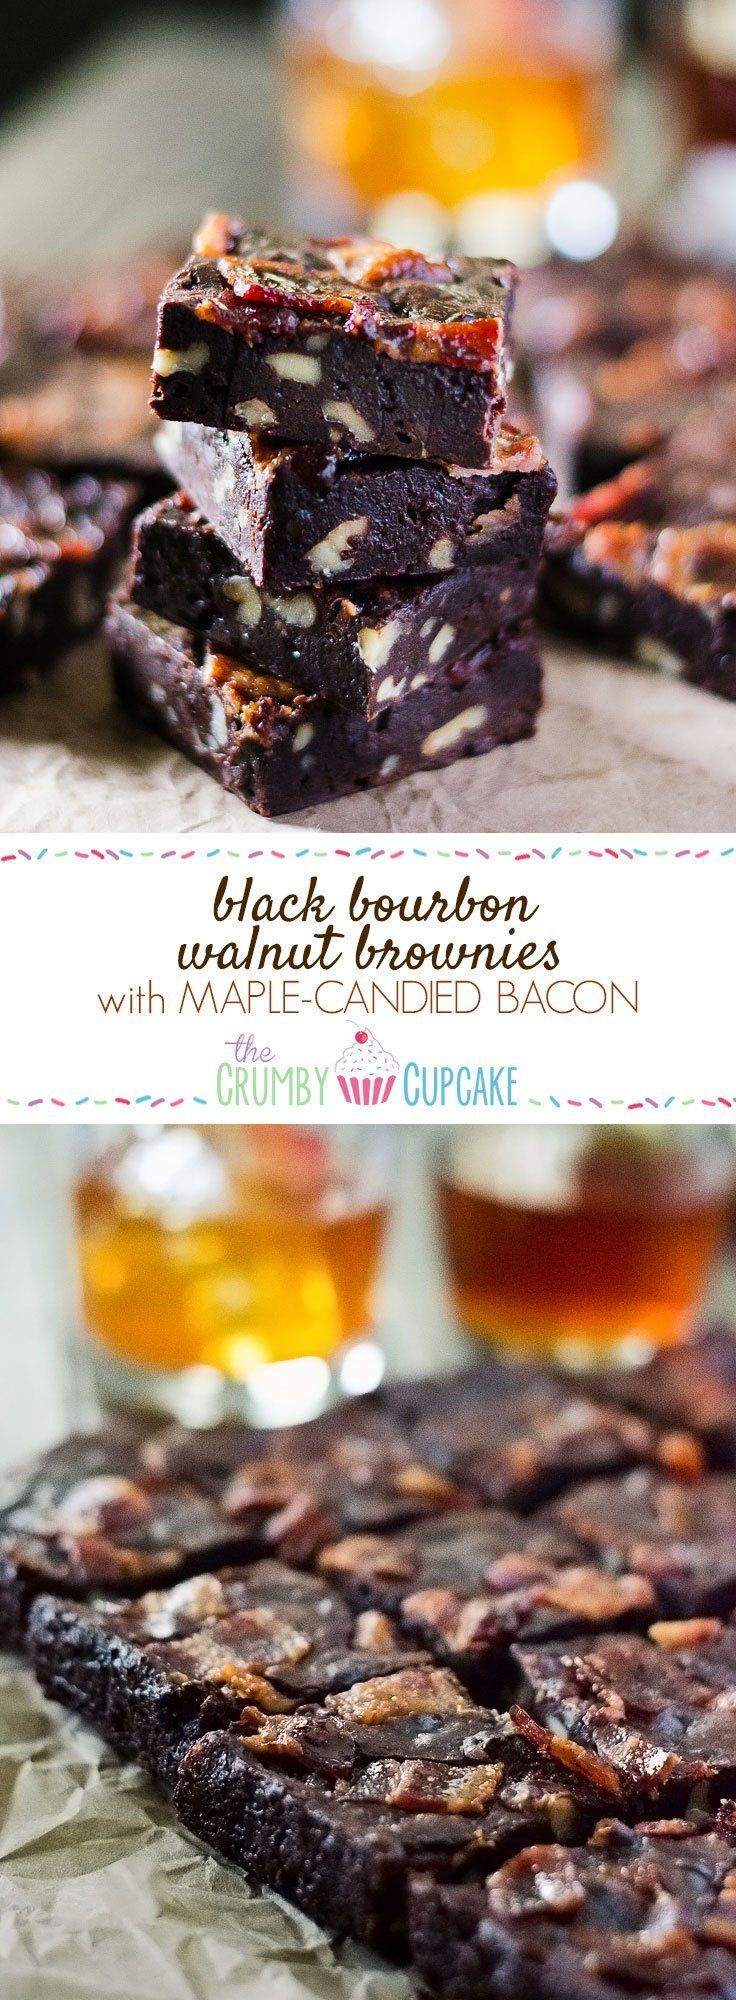 Black Bourbon Walnut Brownies with Maple-Candied Bacon | Dark chocolate, walnuts, and bourbon whiskey come together with maple-candied bacon to create the manliest, most decadent batch of brownies you'll ever eat! They're perfect for the men in your life